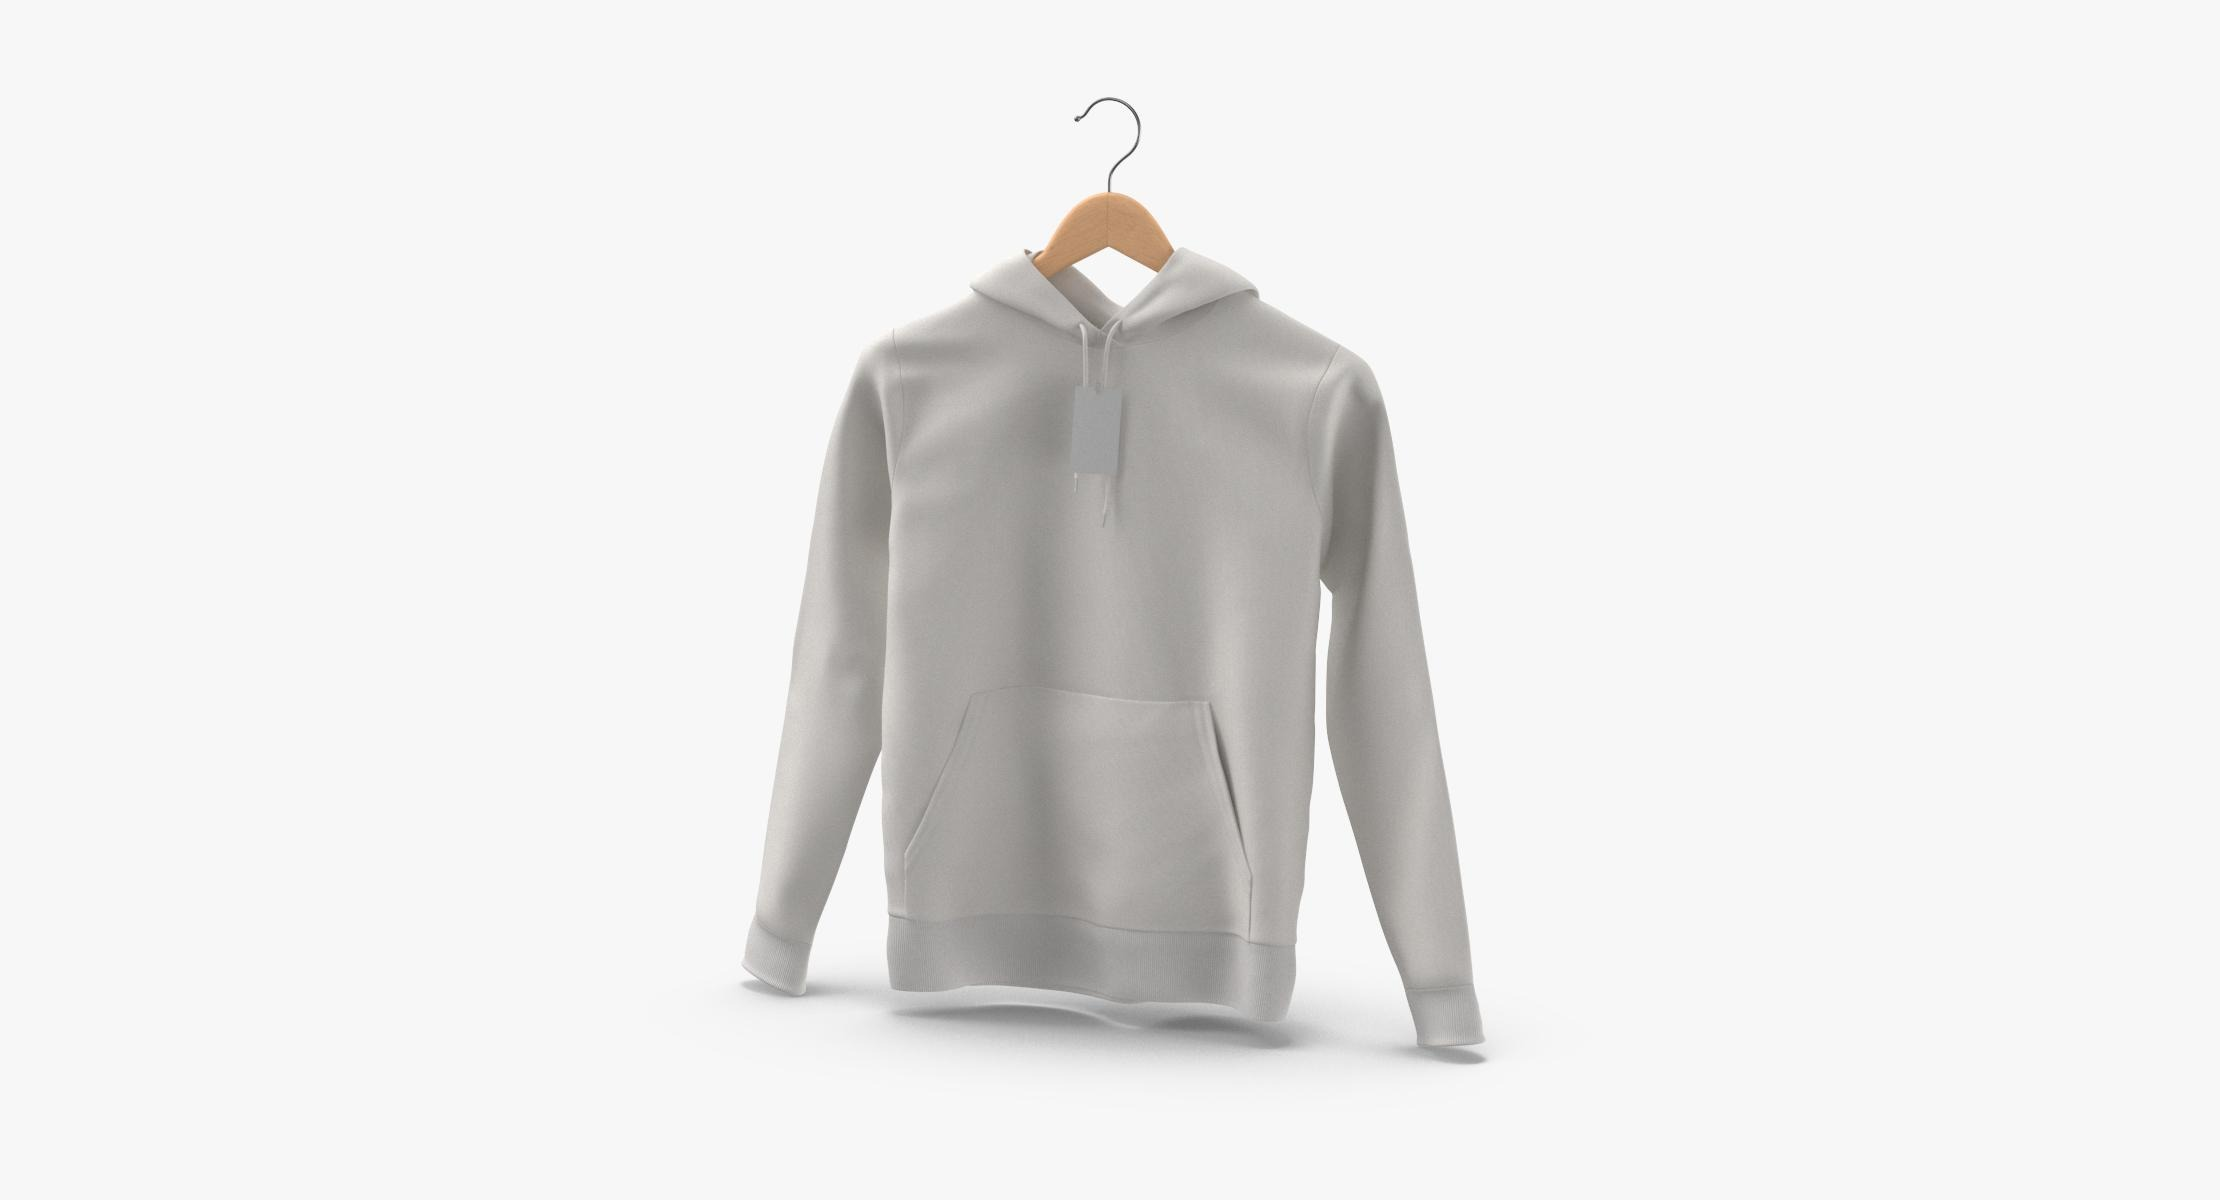 Male Standard Hoodie Hanging on Hanger With Tag - reel 1